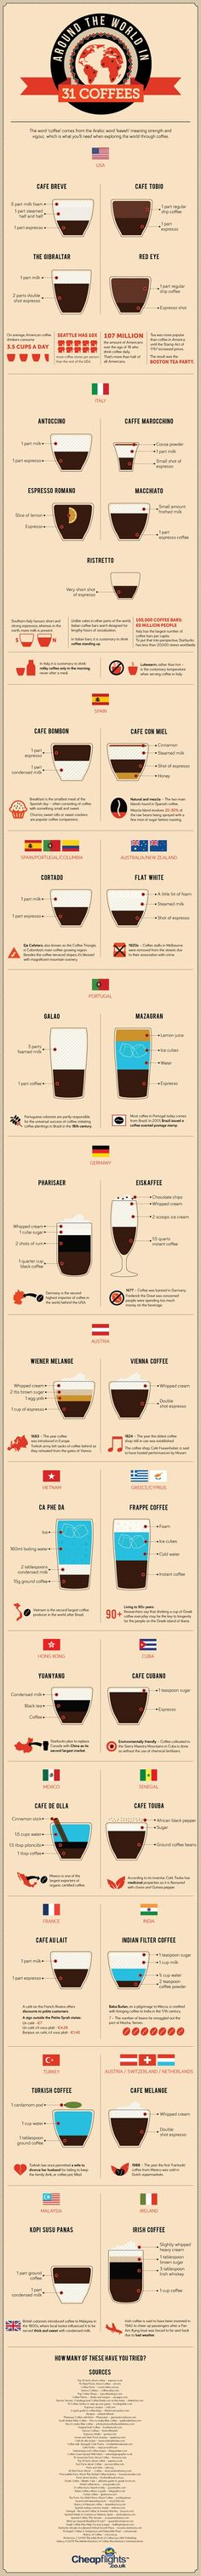 31 Coffee Recipes from Around the World - The Essential Global Infogra